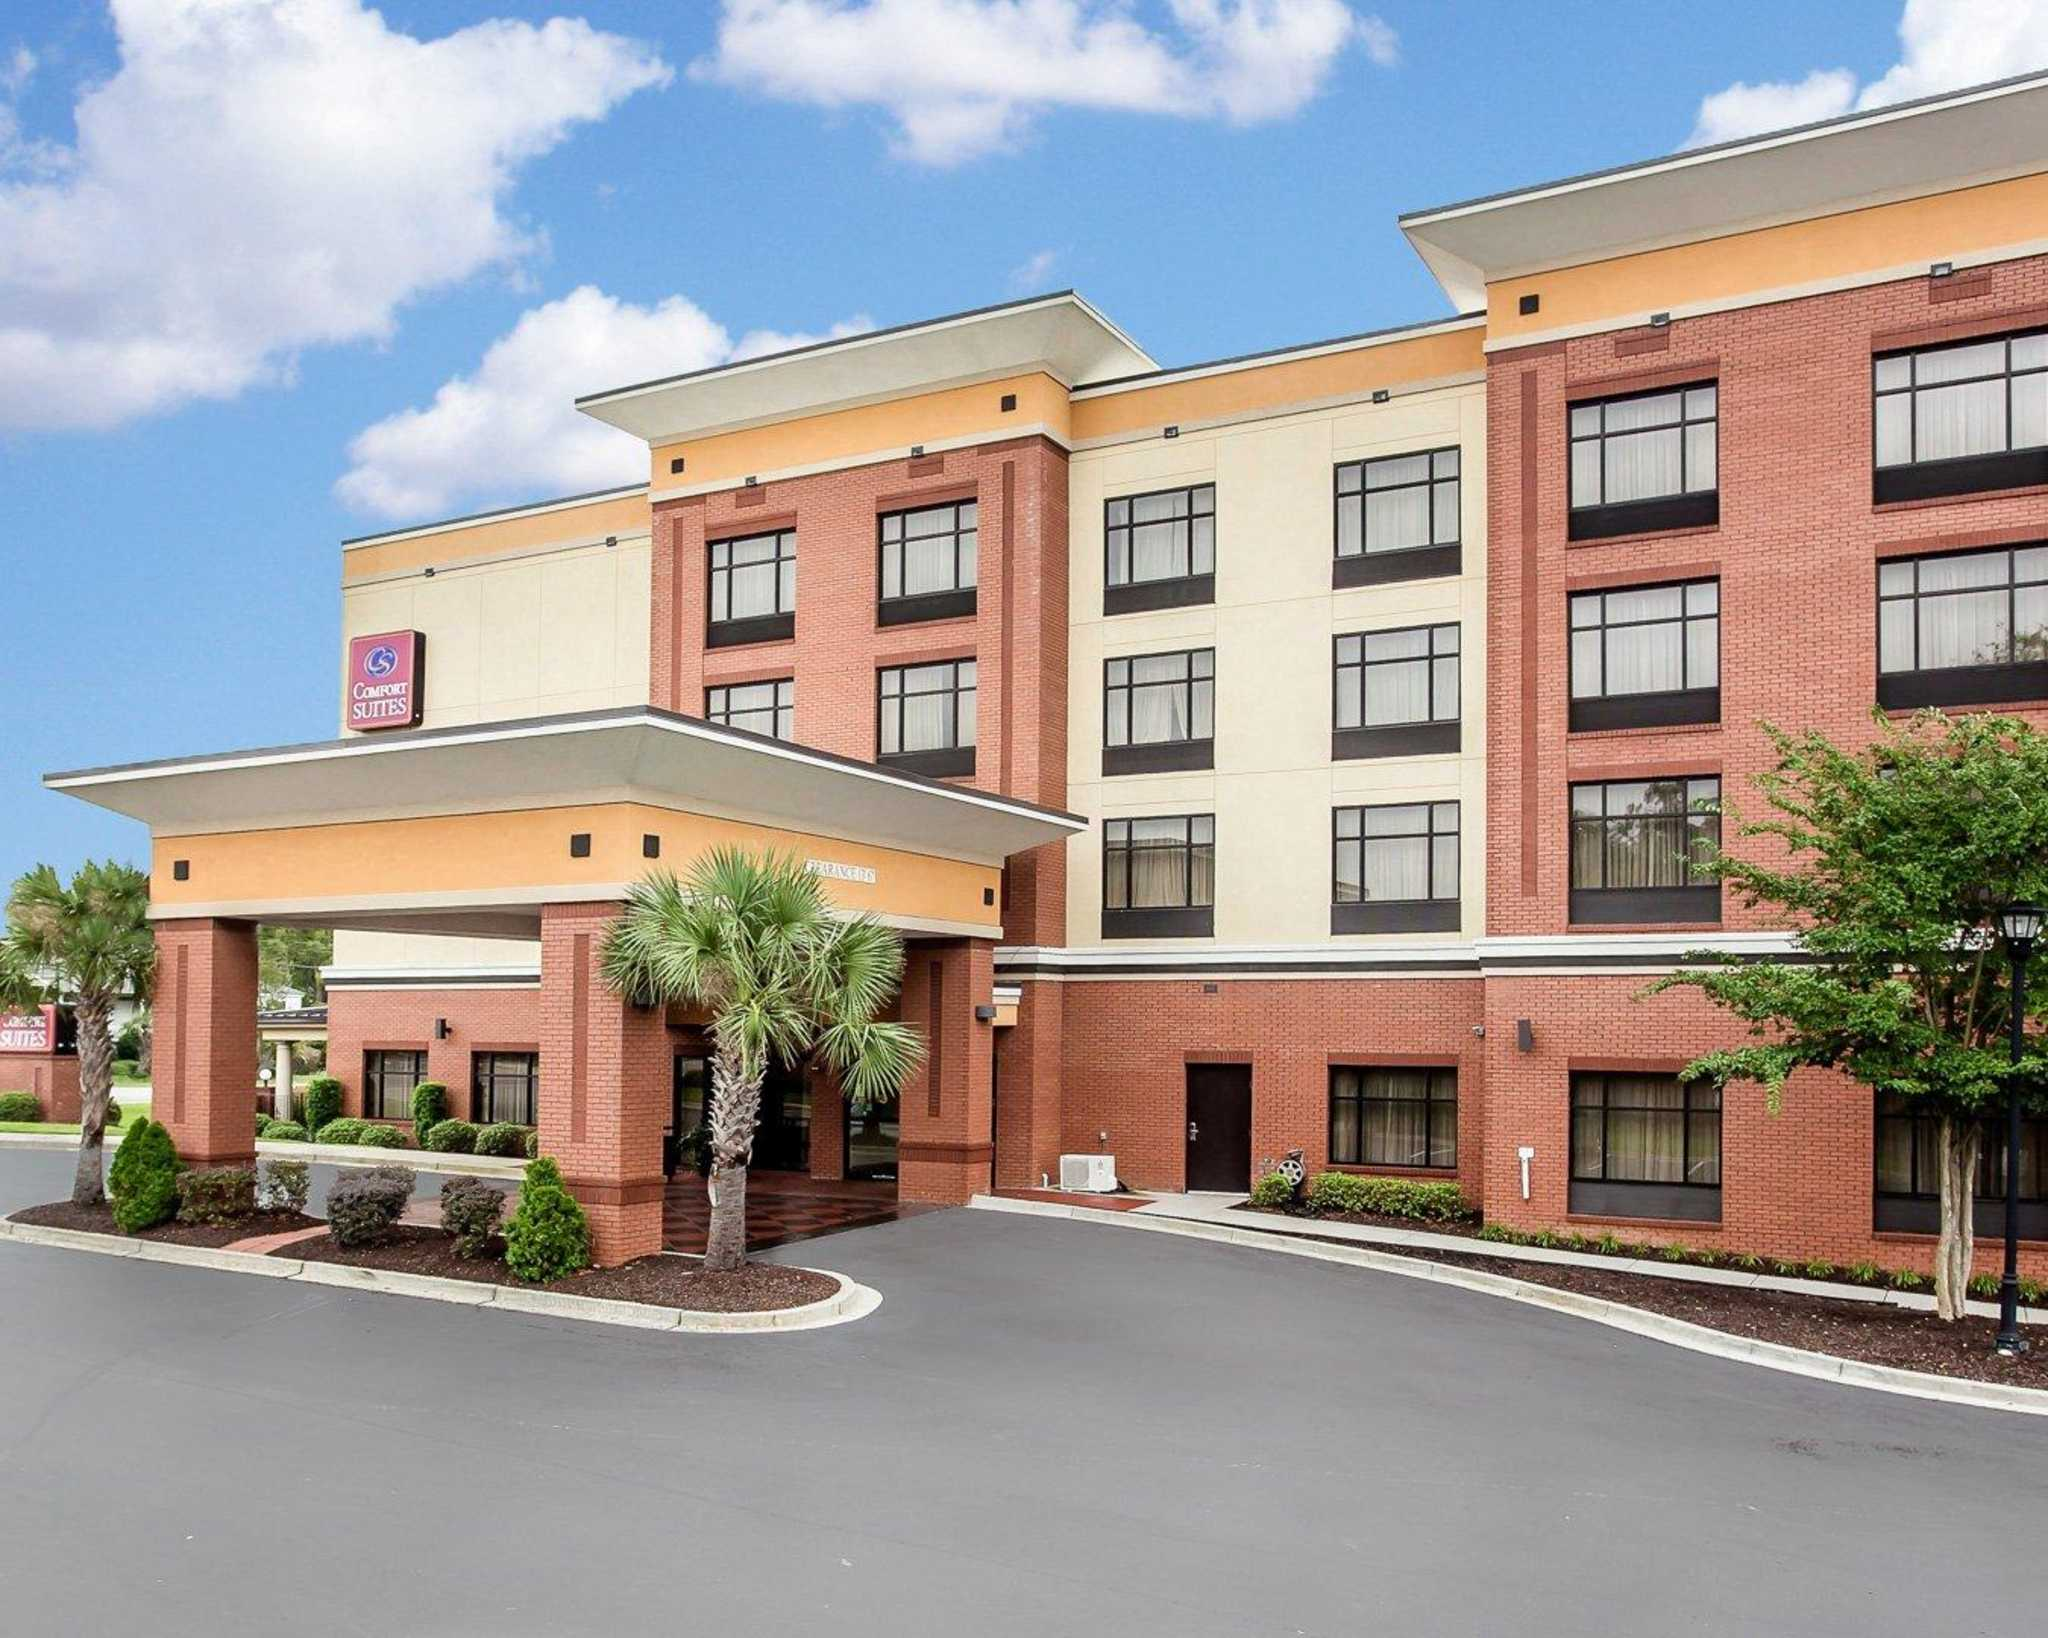 Comfort Suites Coupons Near Me In Lexington 8coupons